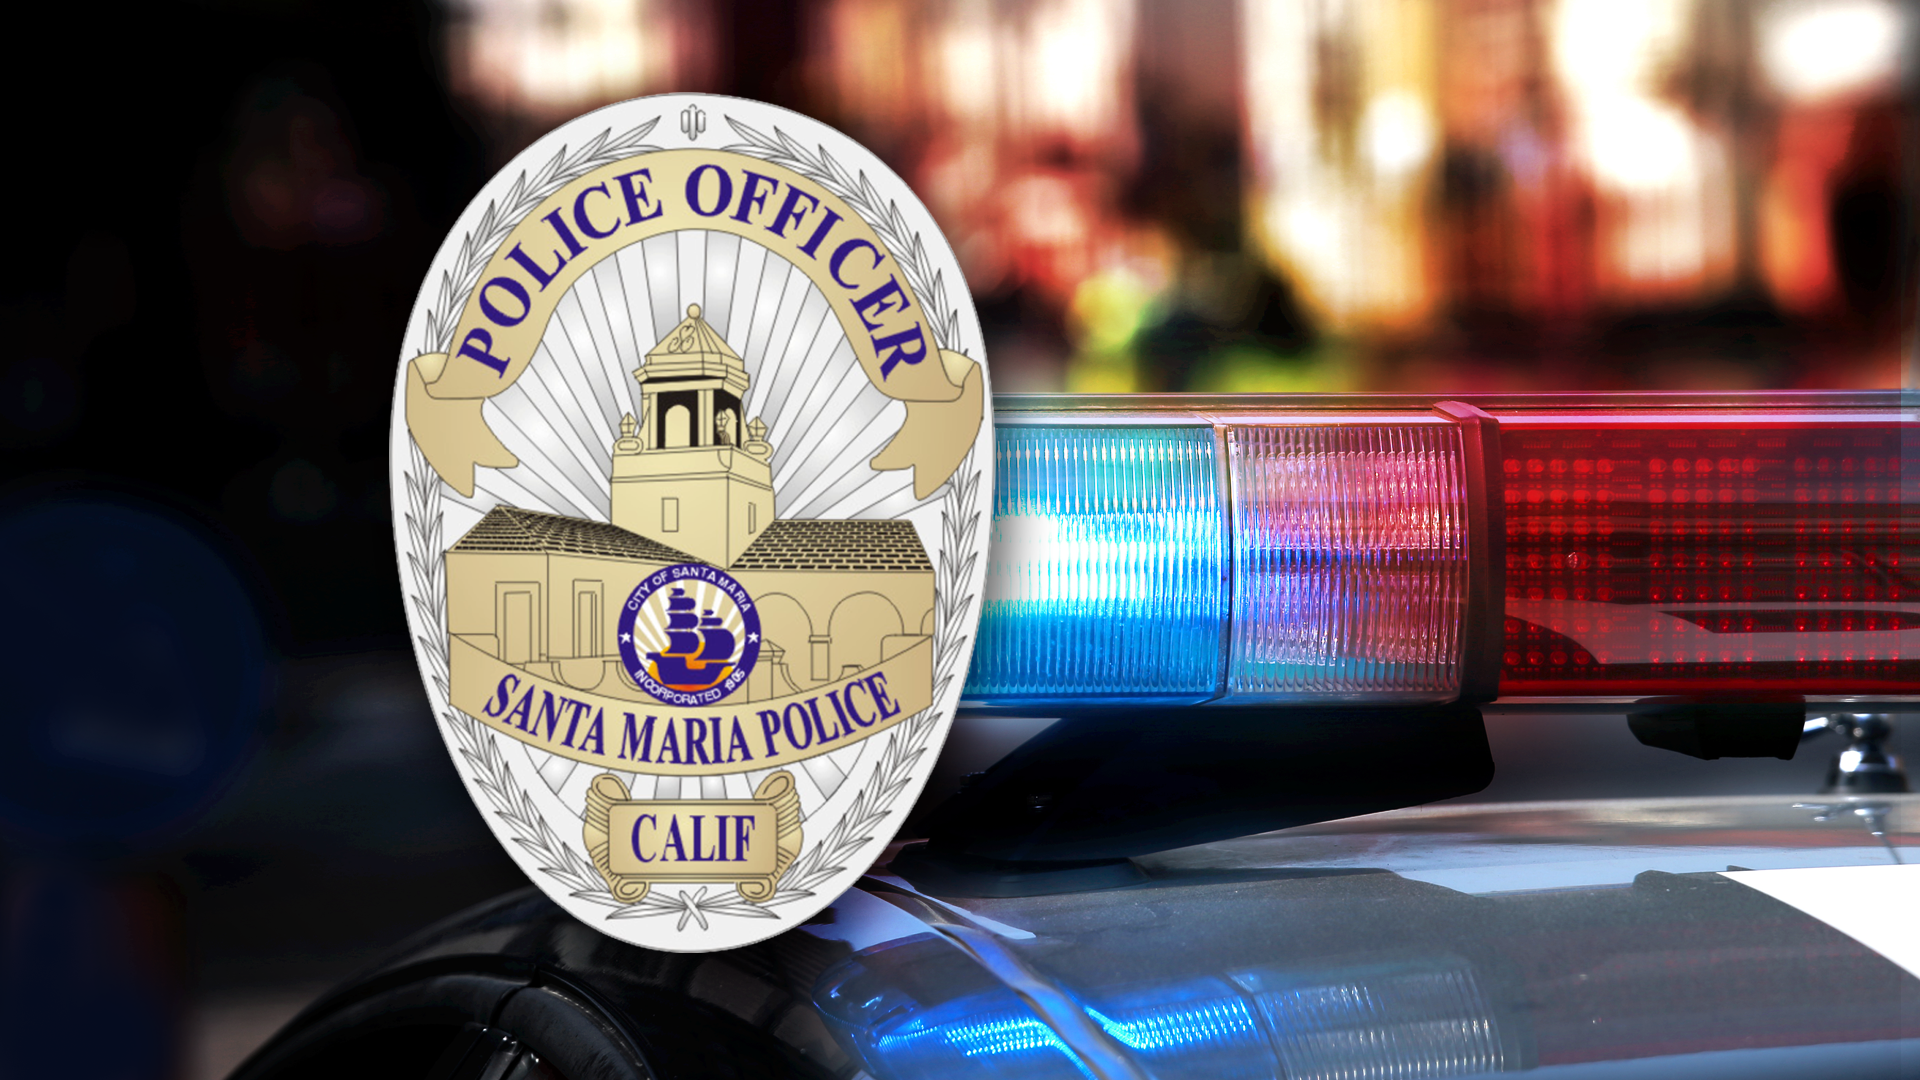 1 detained in connection with Santa Maria bank robbery